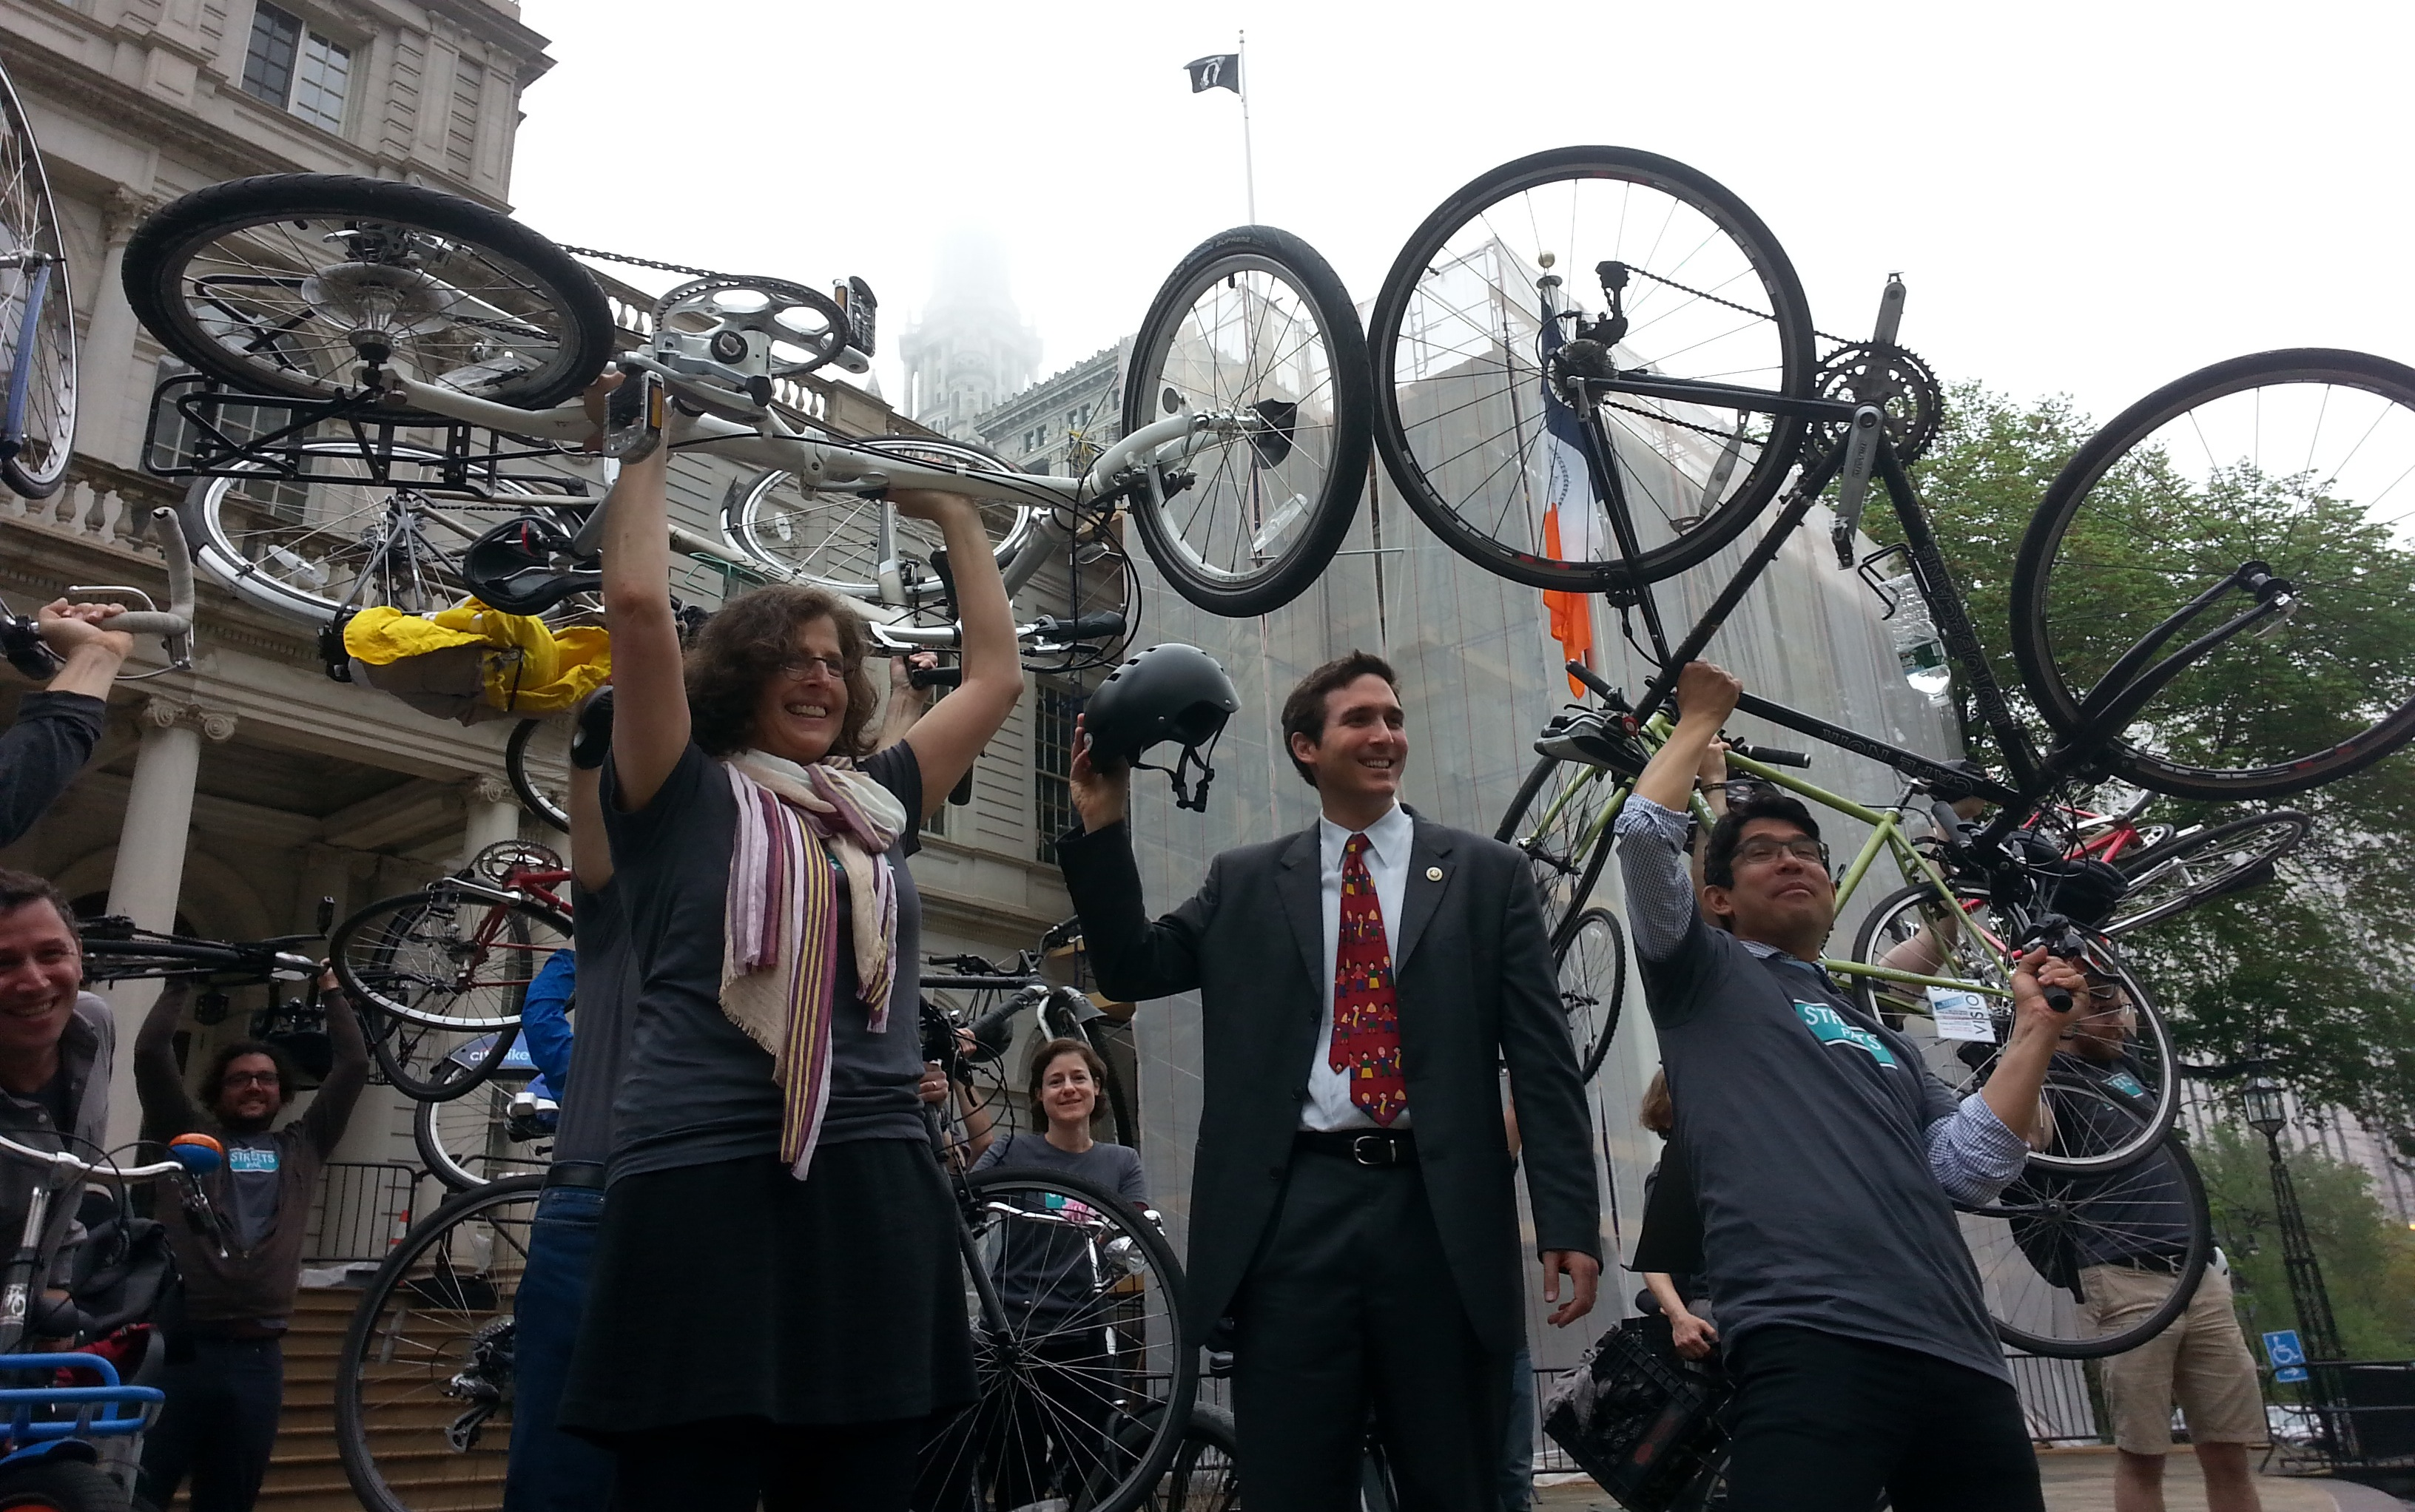 Council Members Helen Rosenthal, Ben Kallos, and Carlos Menchaca raise their bicycles outside outside of City Hall this morning. Photo: Stephen Miller